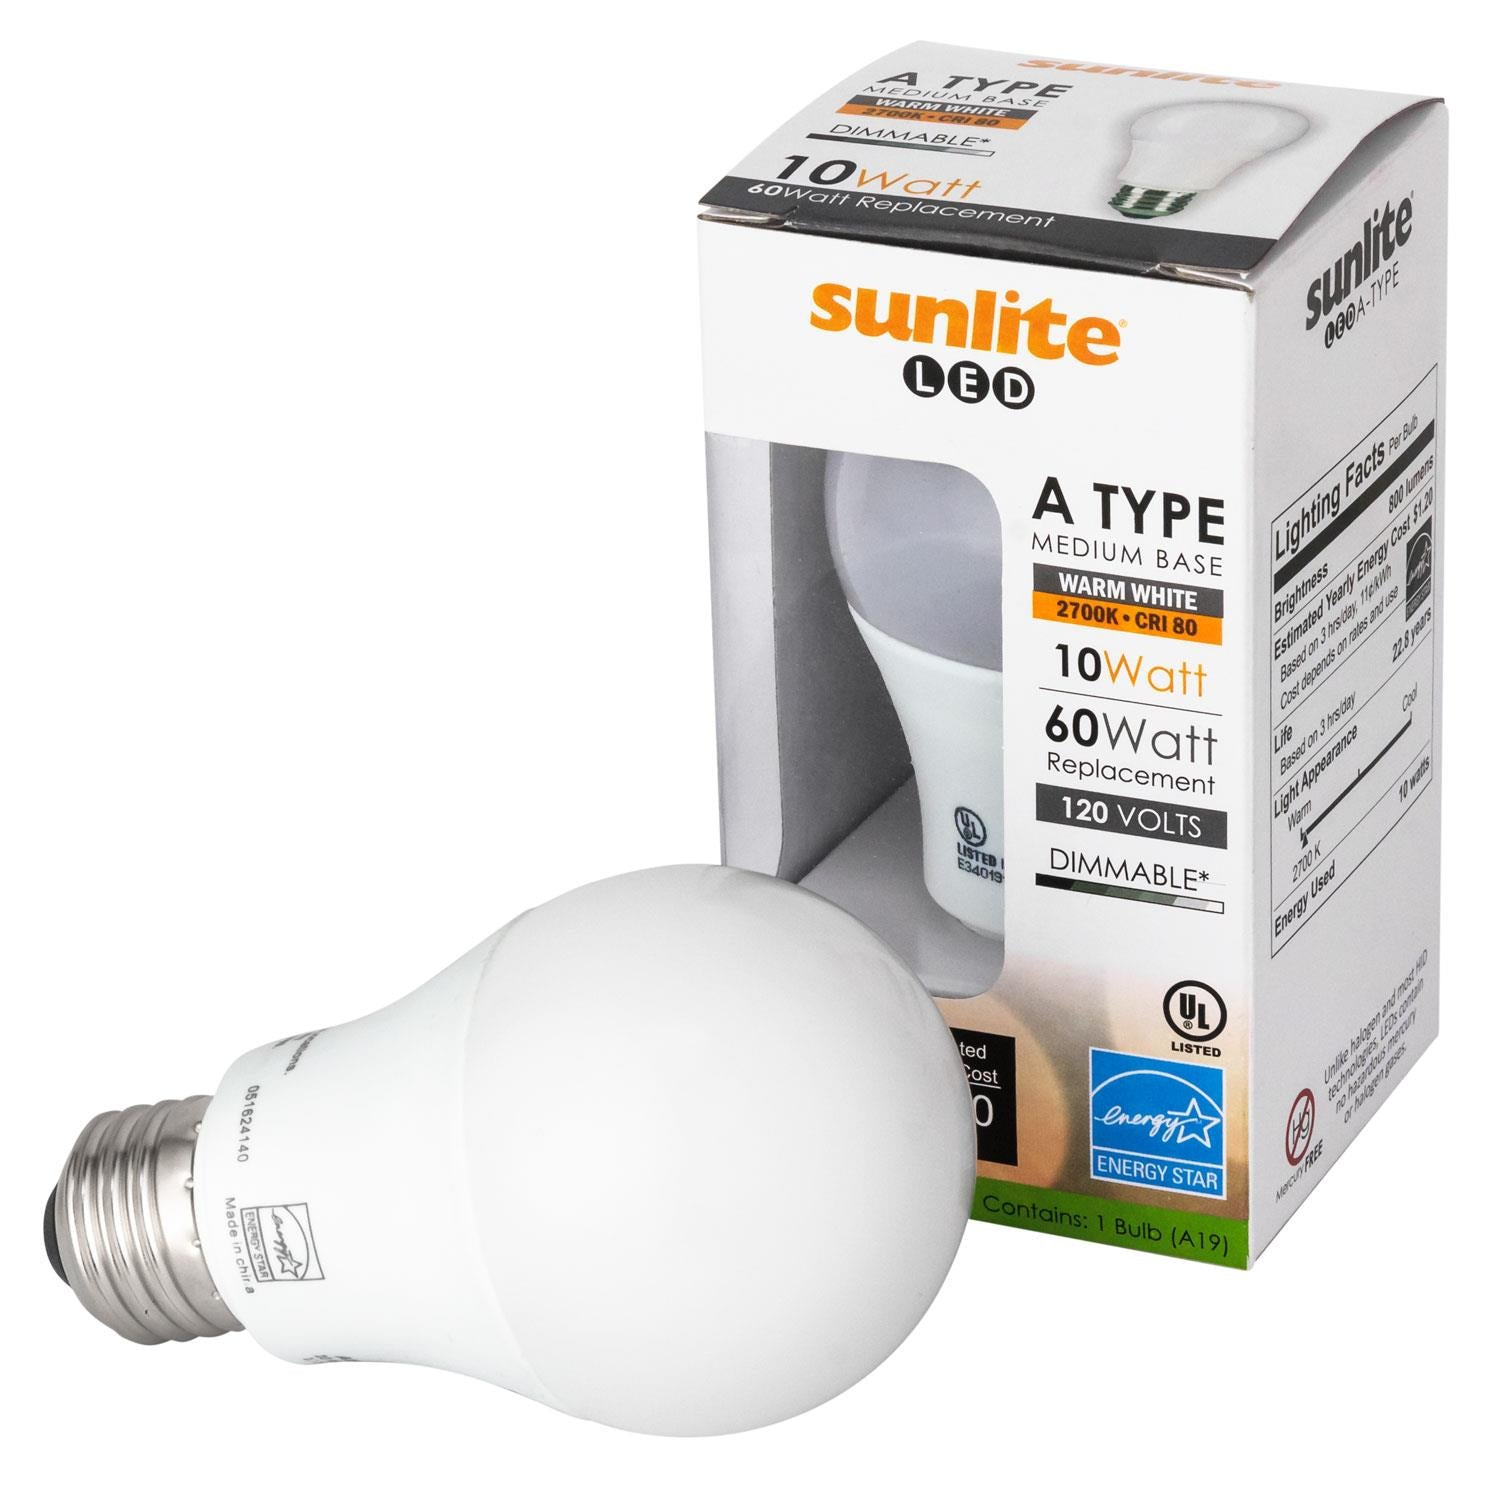 Sunlite 88301-SU LED A19 Household 10w Light Bulbs Warm White 3000K